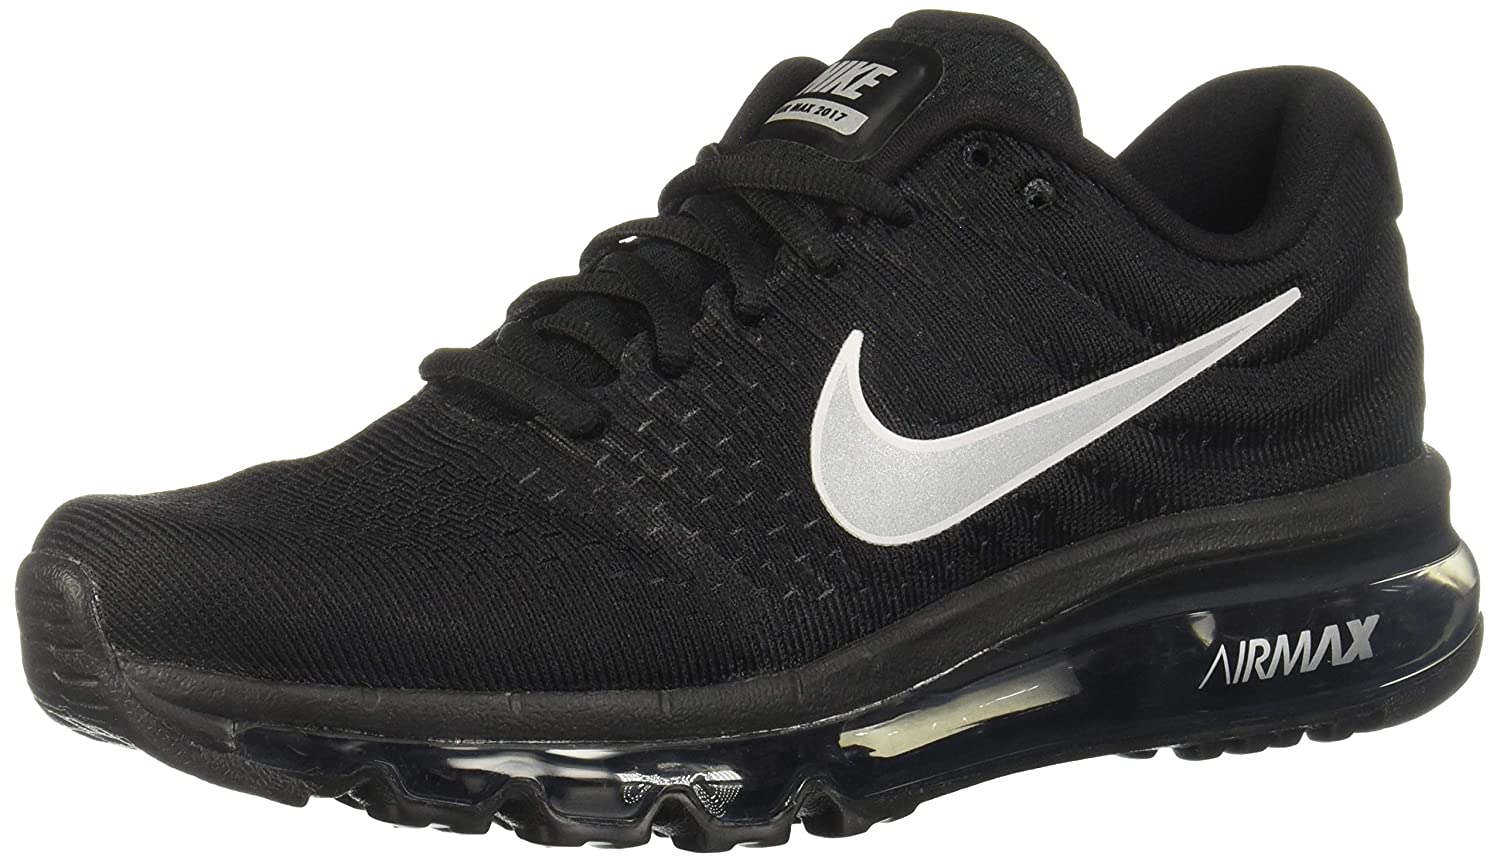 on sale 22997 b7449 Amazon.com   Nike Womens Air Max 2017 Running Shoes Black White Anthracite  849560-001 Size 10   Road Running